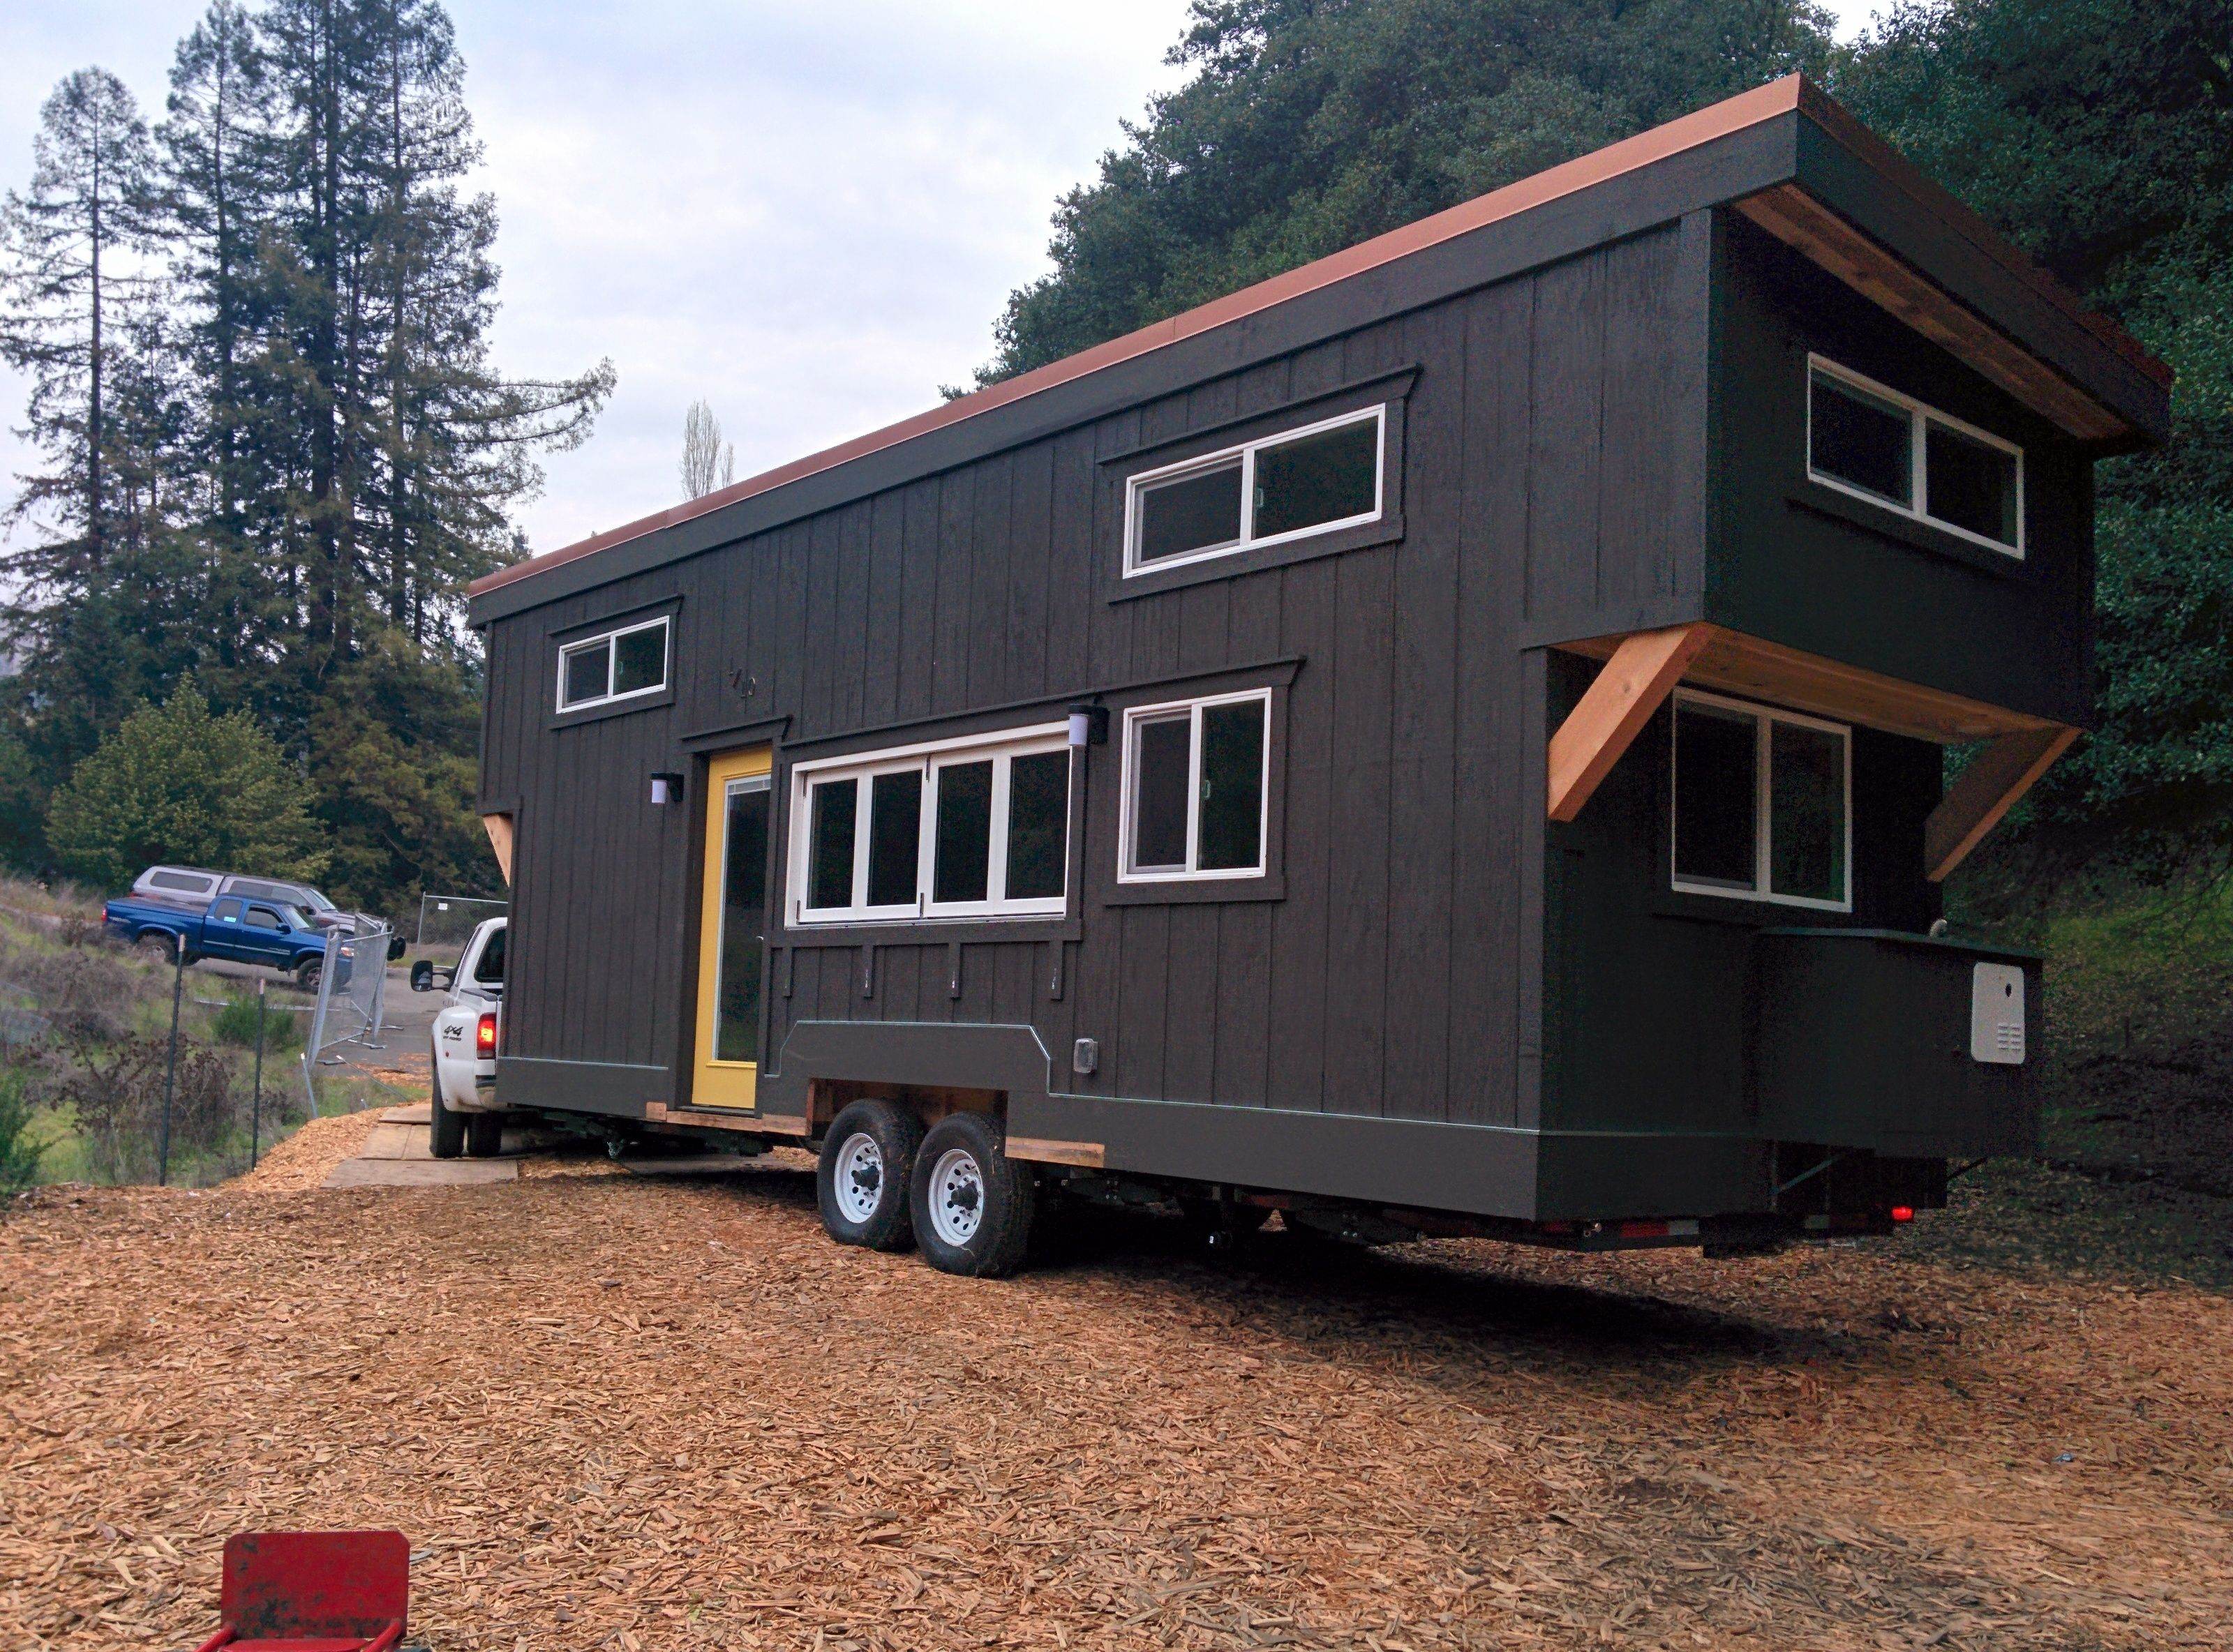 Tiny houses on trailers for sale - House